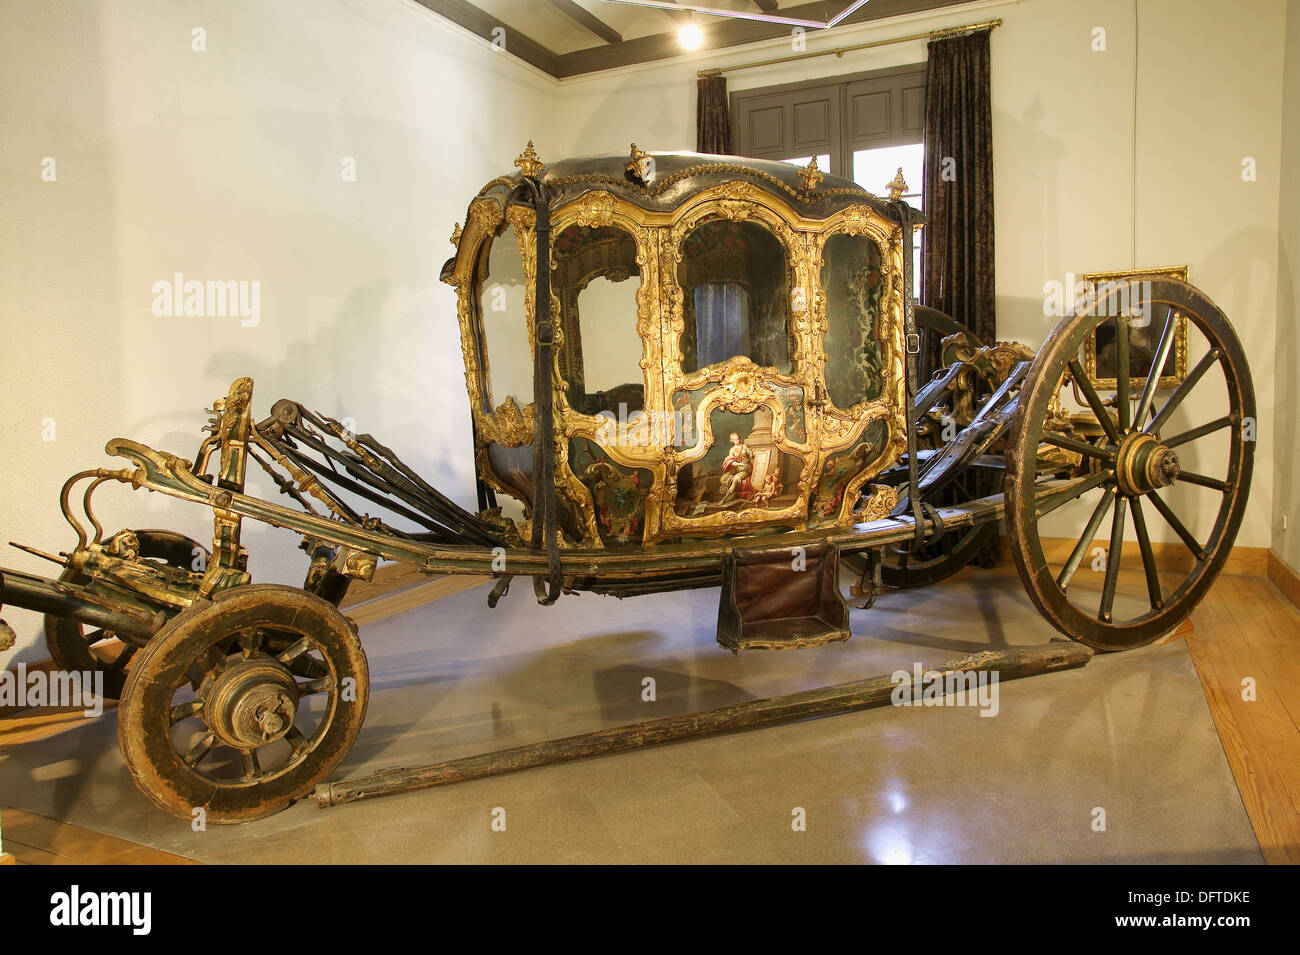 Carriage berlina xviiith century baroque rococo style for Carriage style